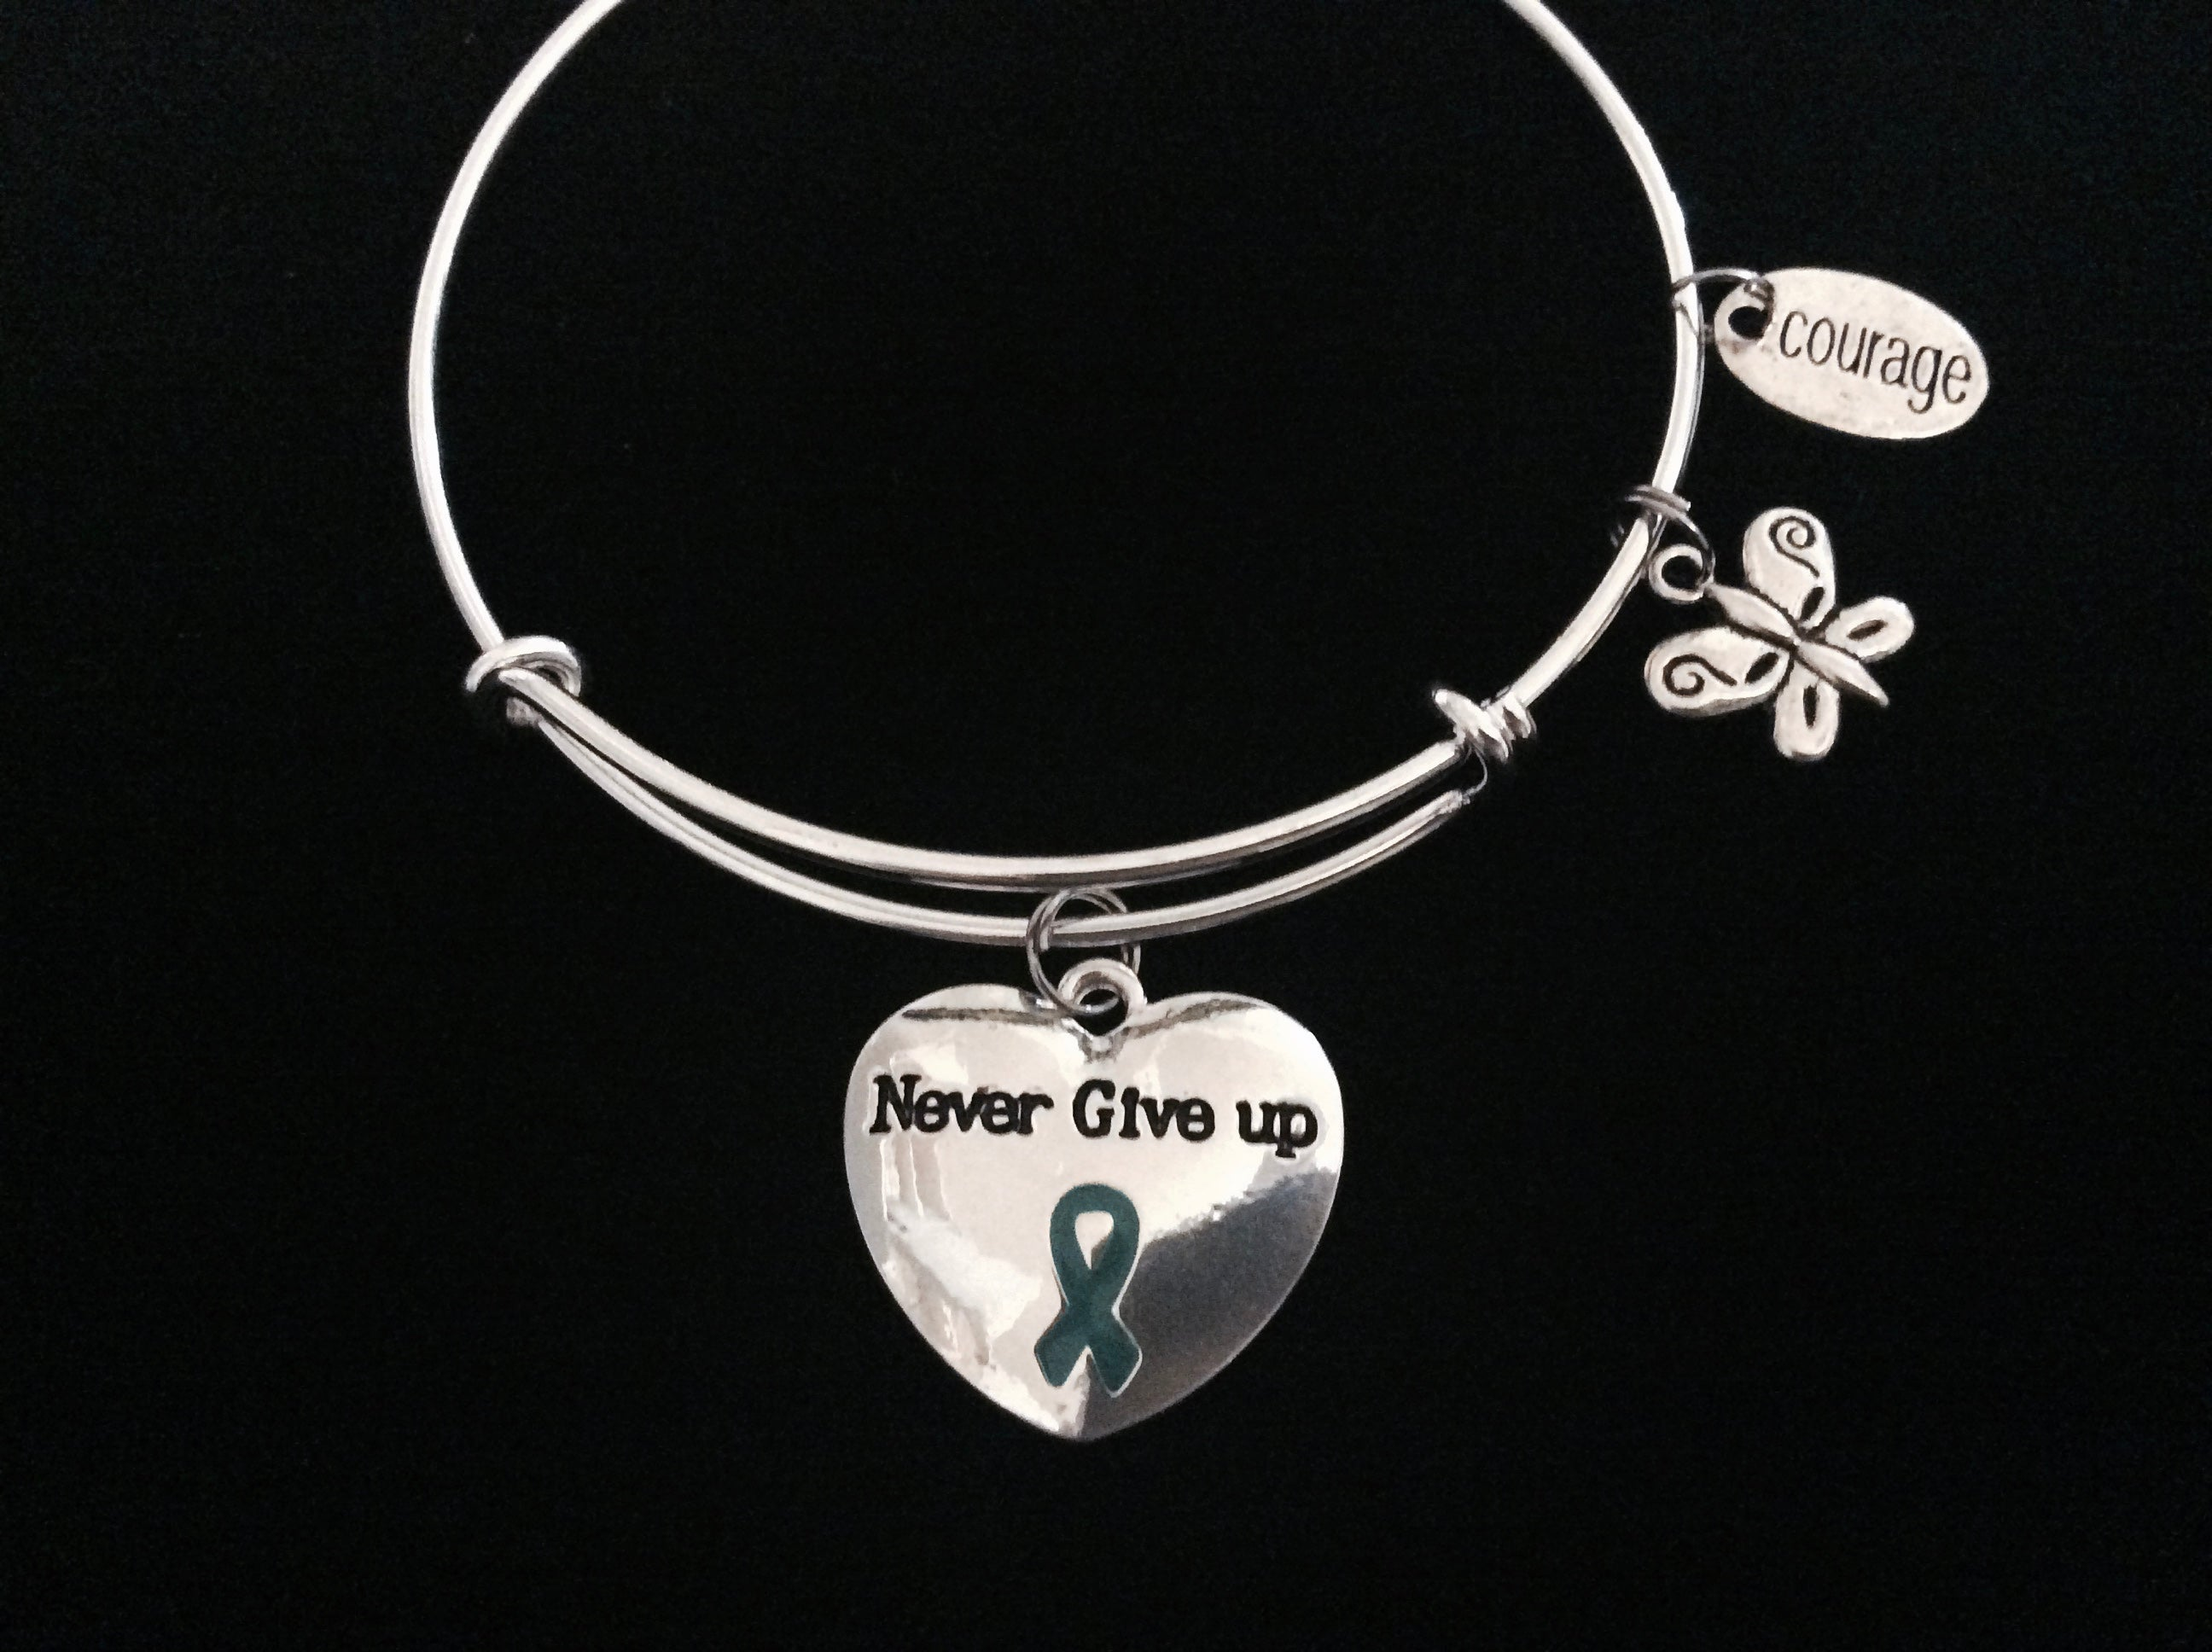 fundraising img network shop cjd charm bracelet star love group support australia awareness